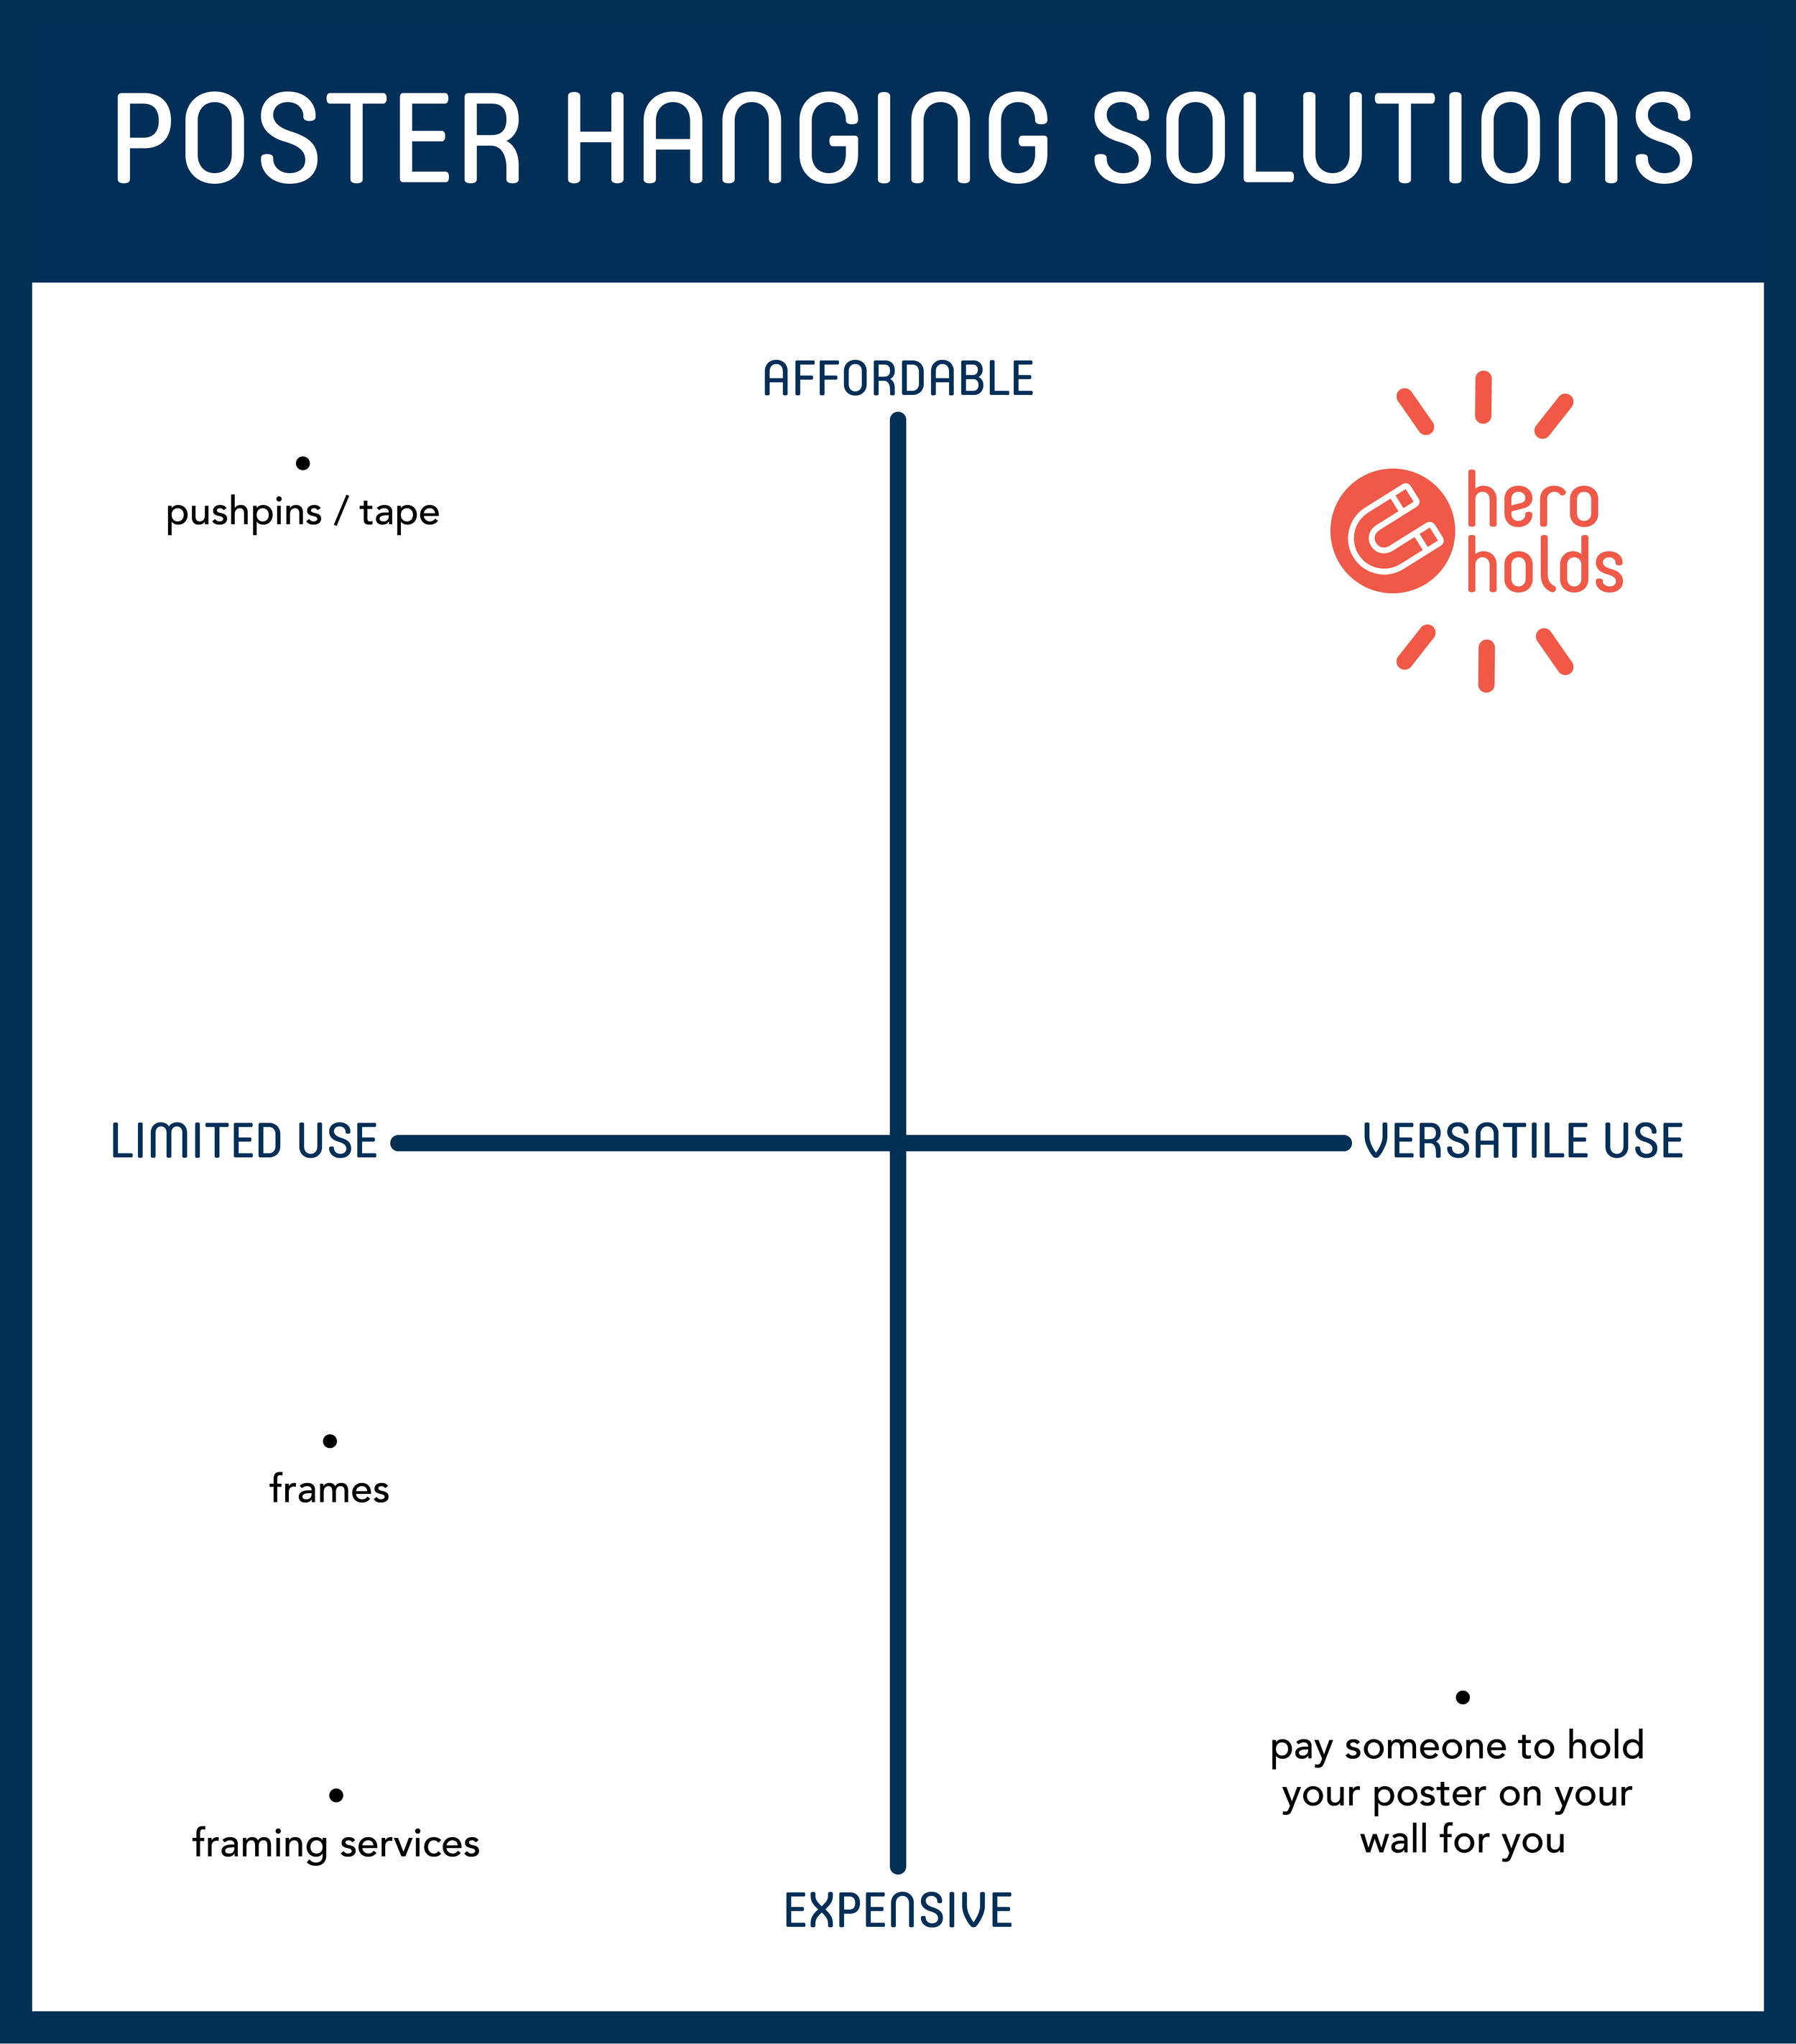 Hero Holds stand alone as your only versatile and affordable poster-hanging solution.